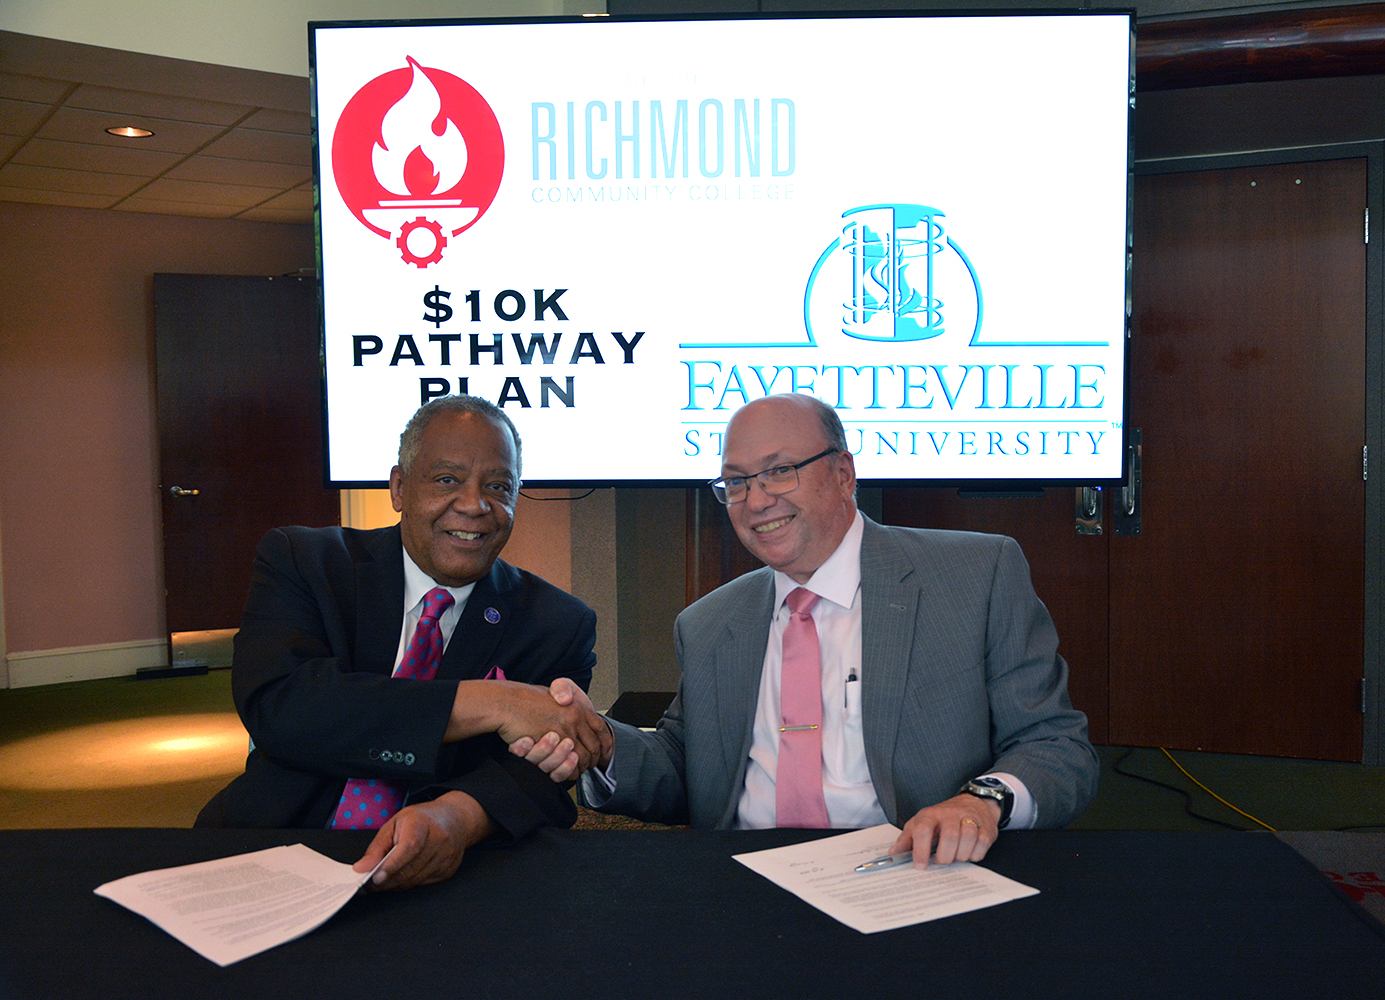 Fayetteville State Opens 10k Pathway Plan To Richmondcc Graduates Richmond Community College